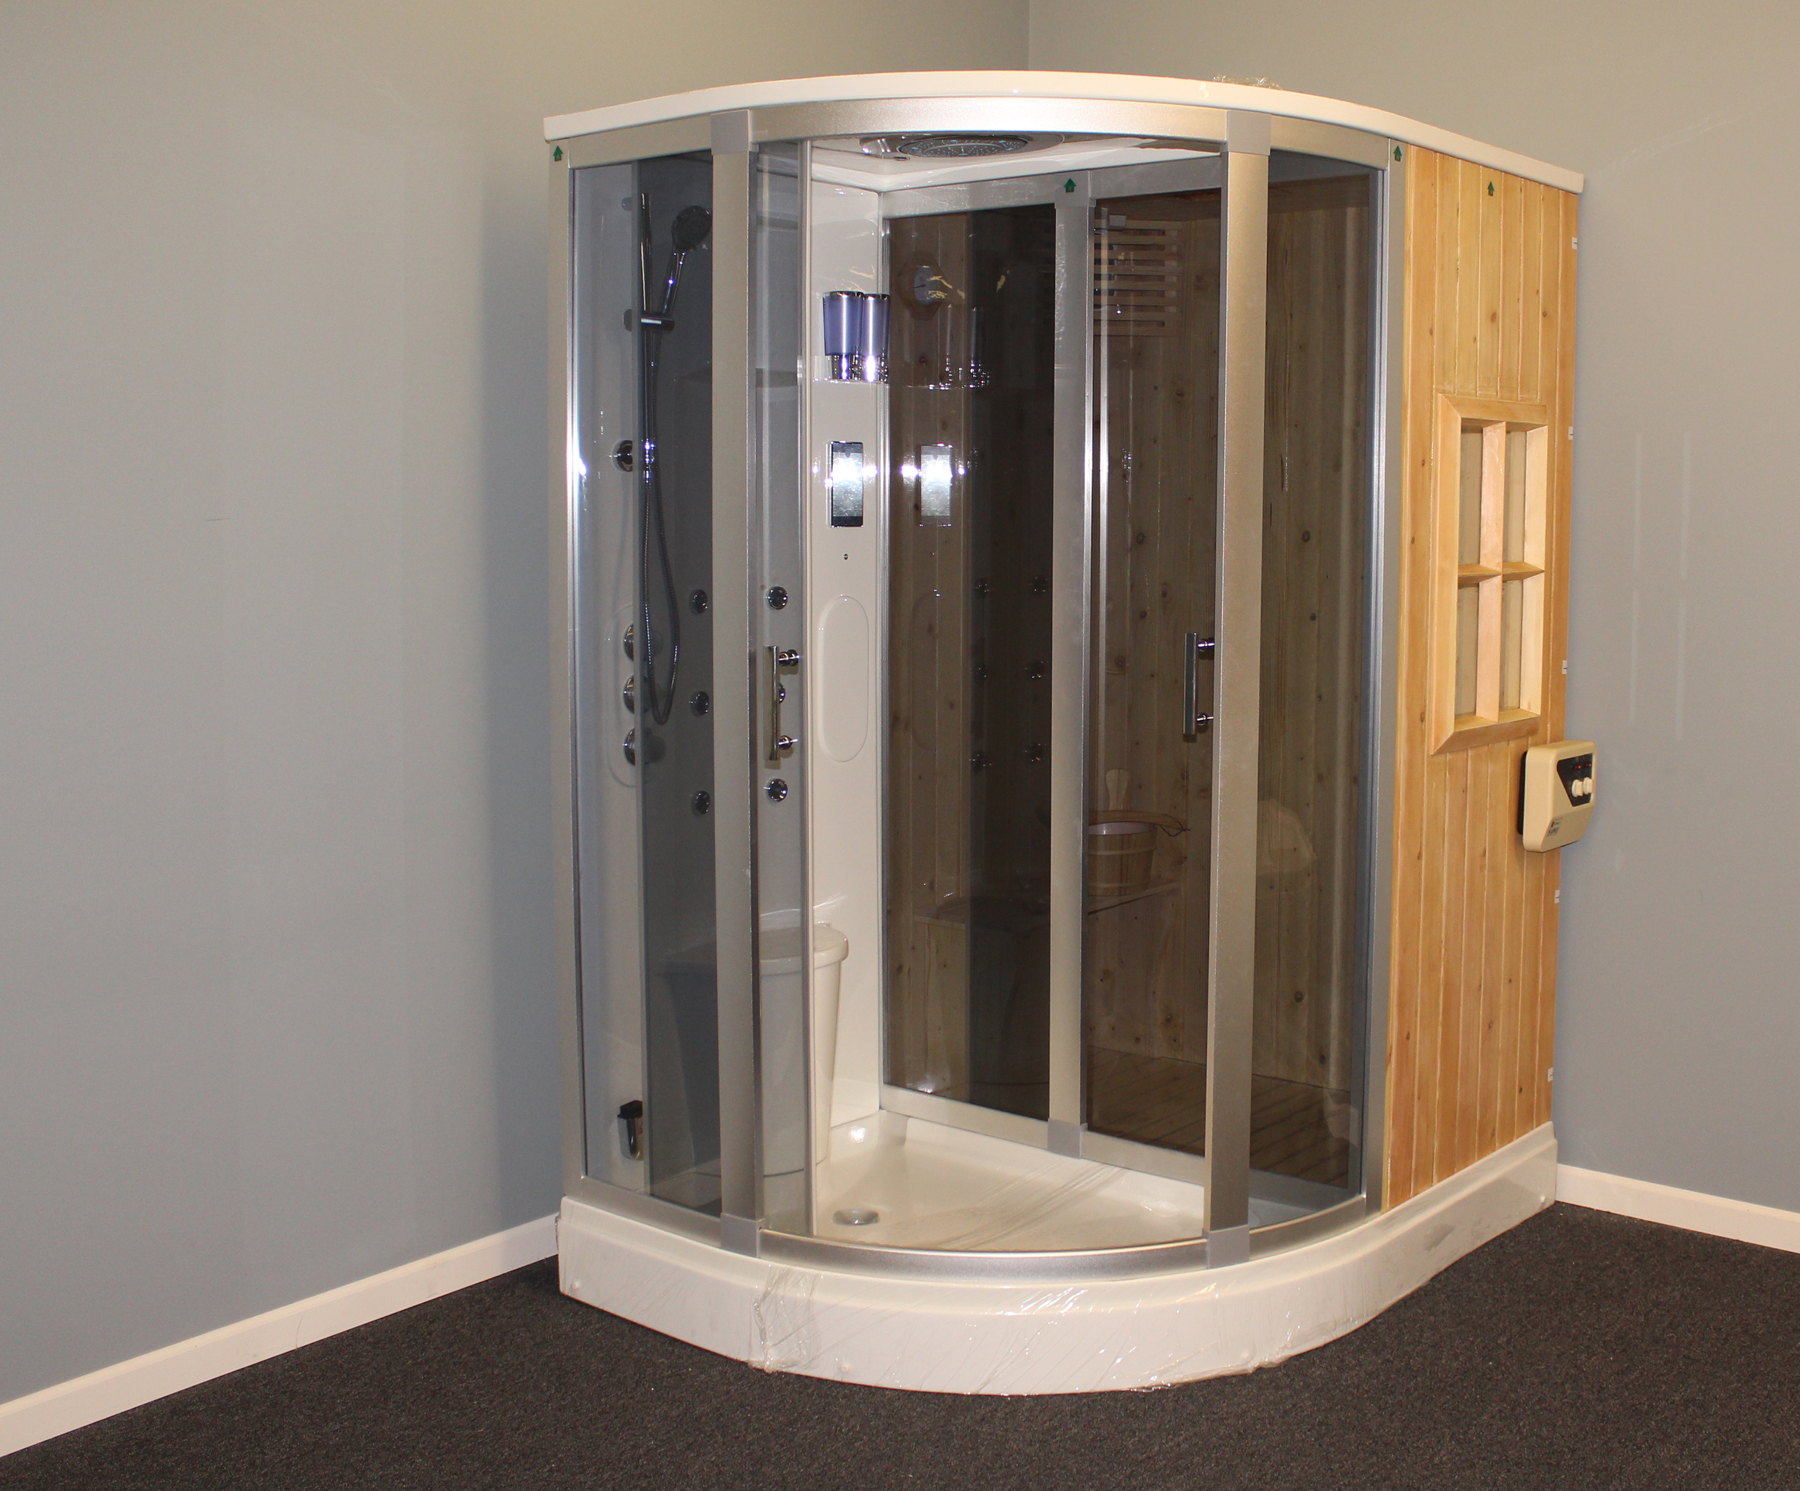 High Quality B001   Image 19 Deluxe Shower / Dry Sauna Combo System + Steam Cabin.